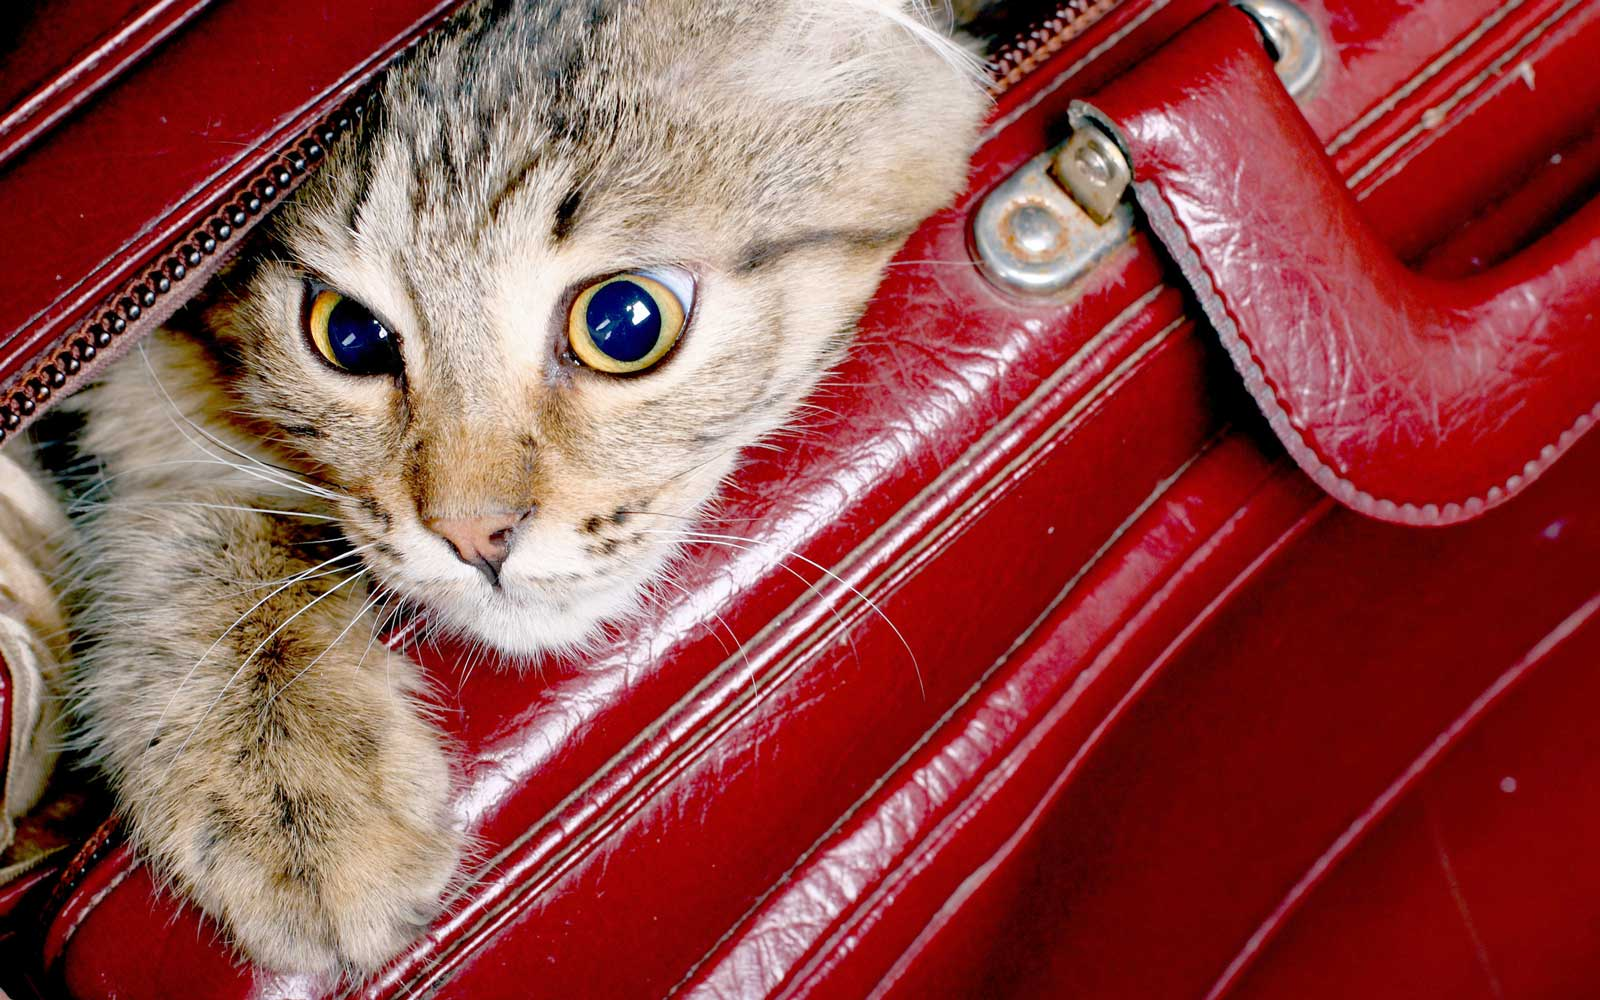 Cat in a luggage suitcase